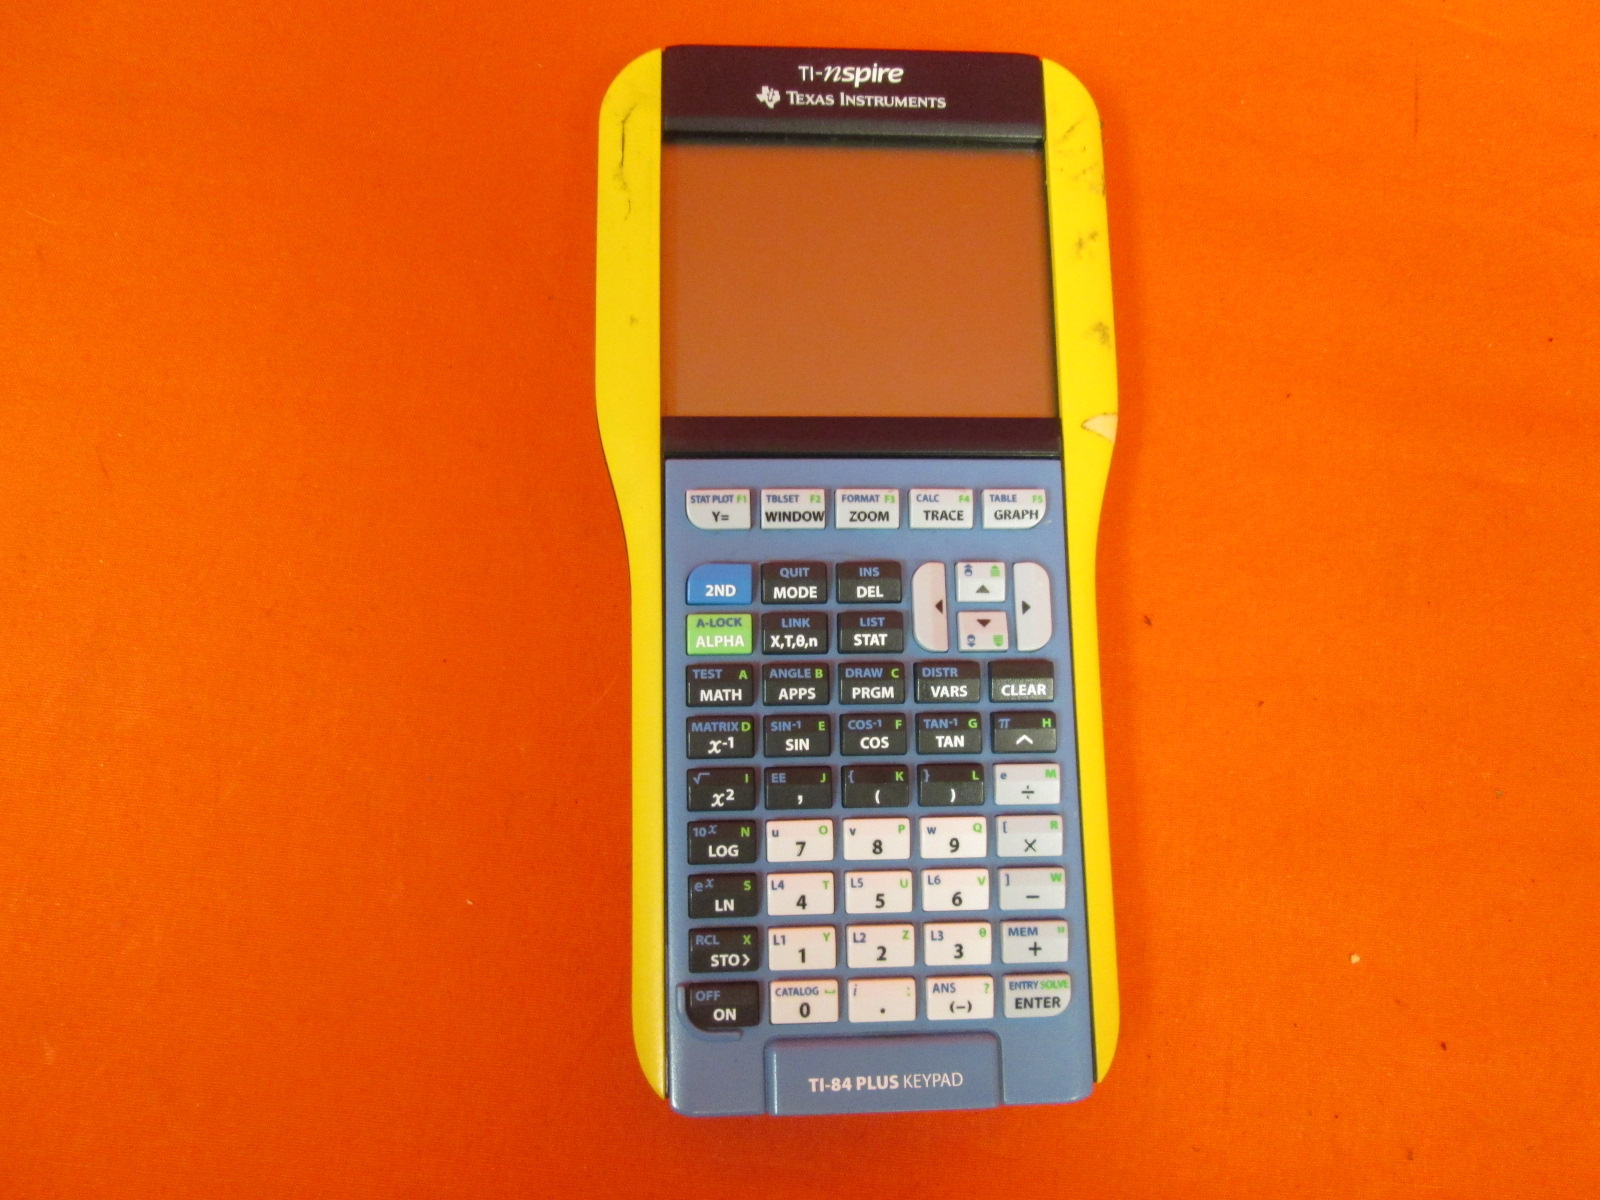 TI-84 Plus Keypad Nspire With Touchpad Calculator